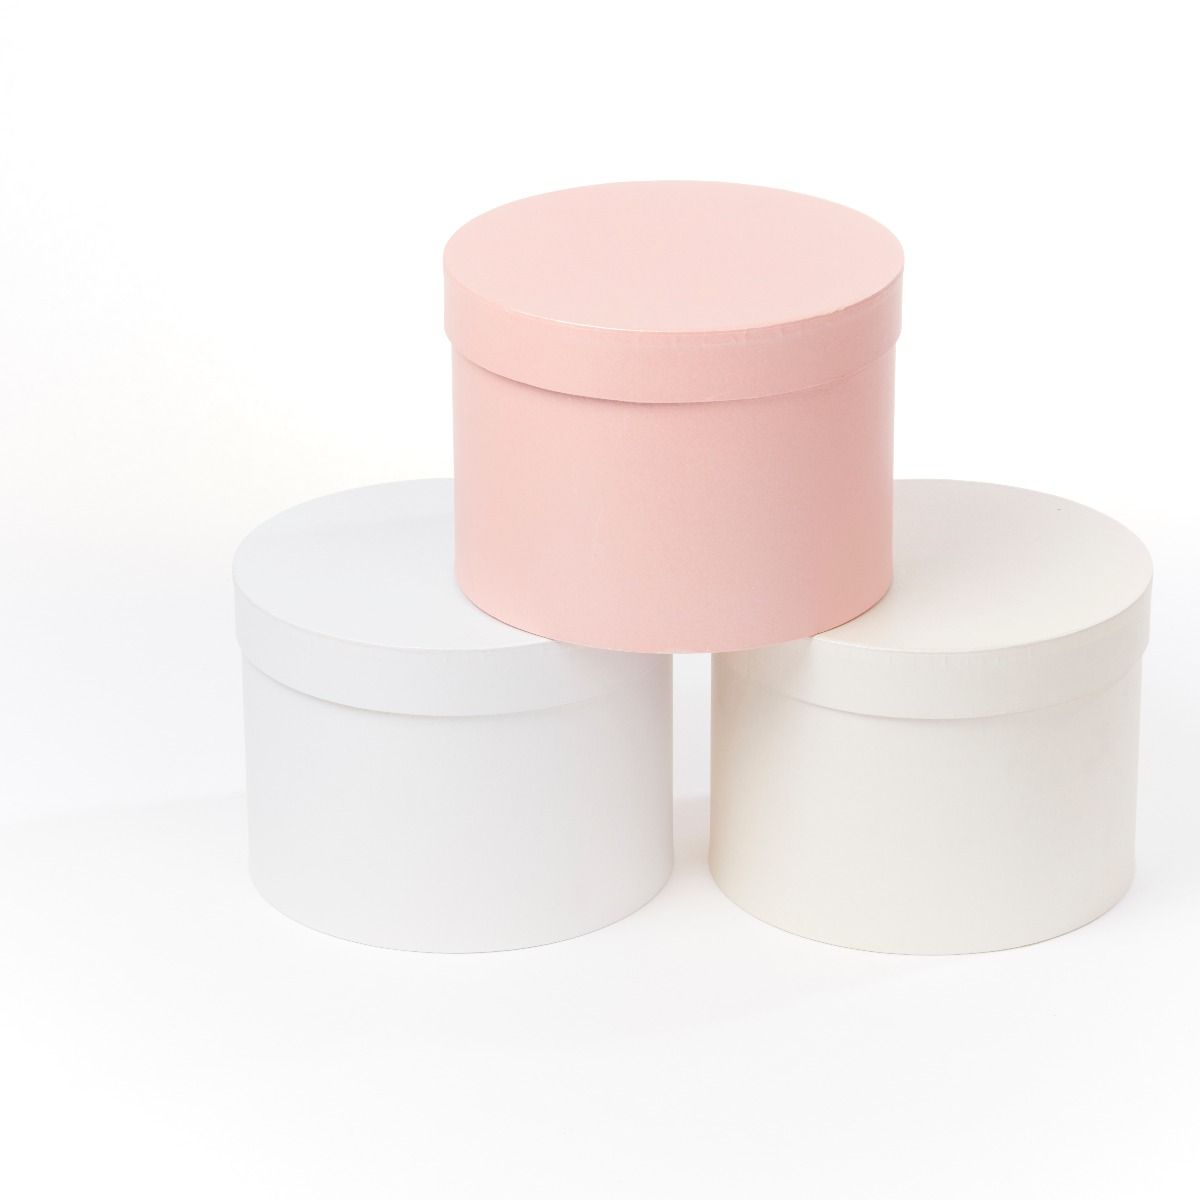 Symphony Round Lined Hat Box